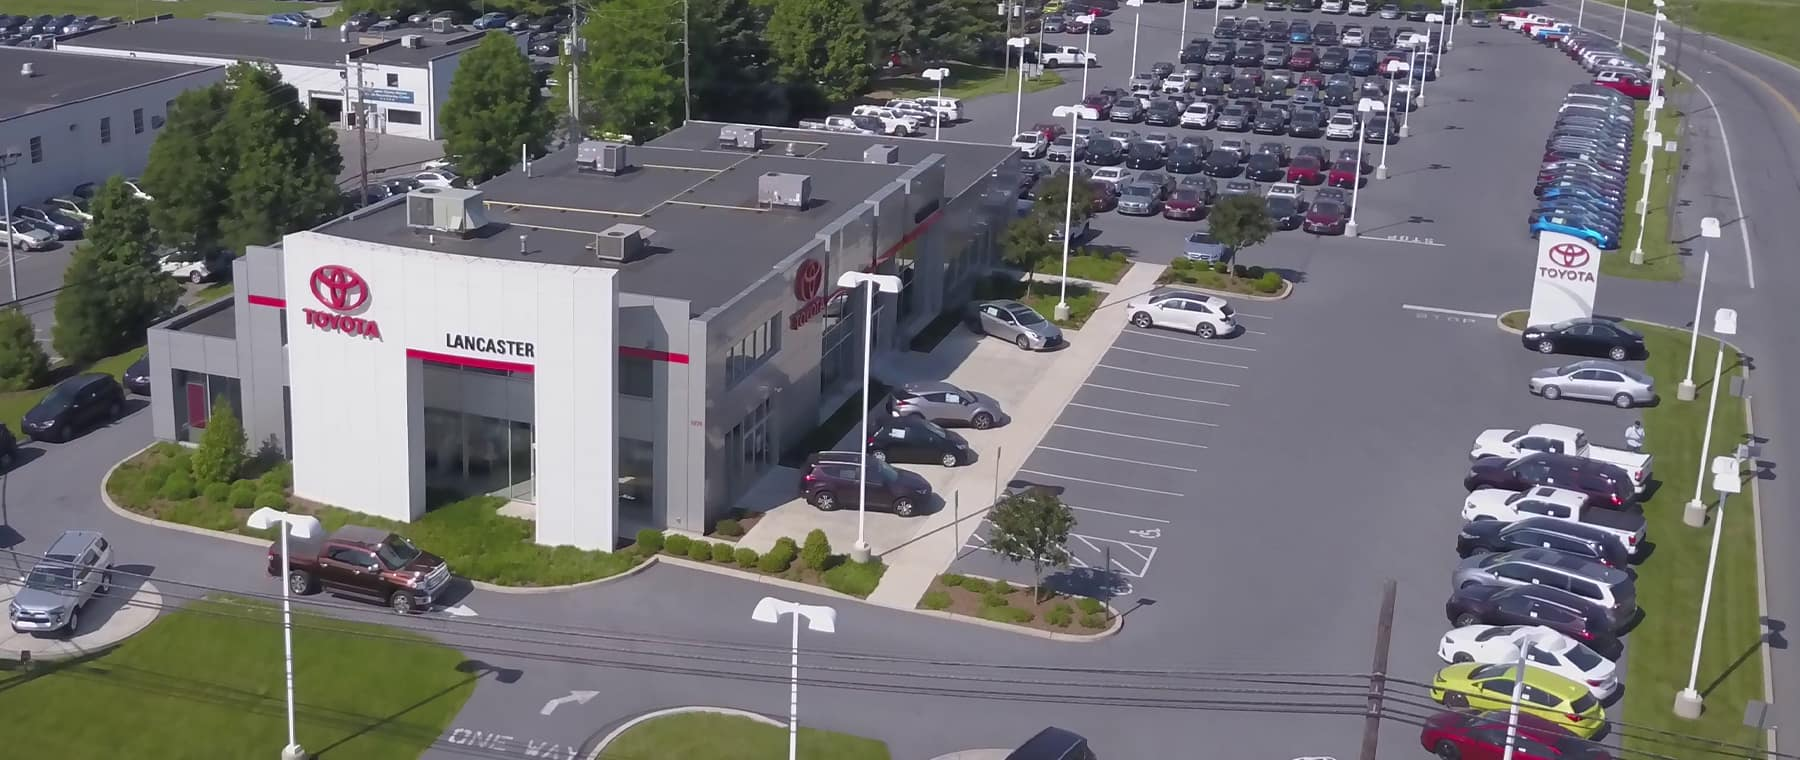 Lancaster_Toyota_Homepage_Banner2